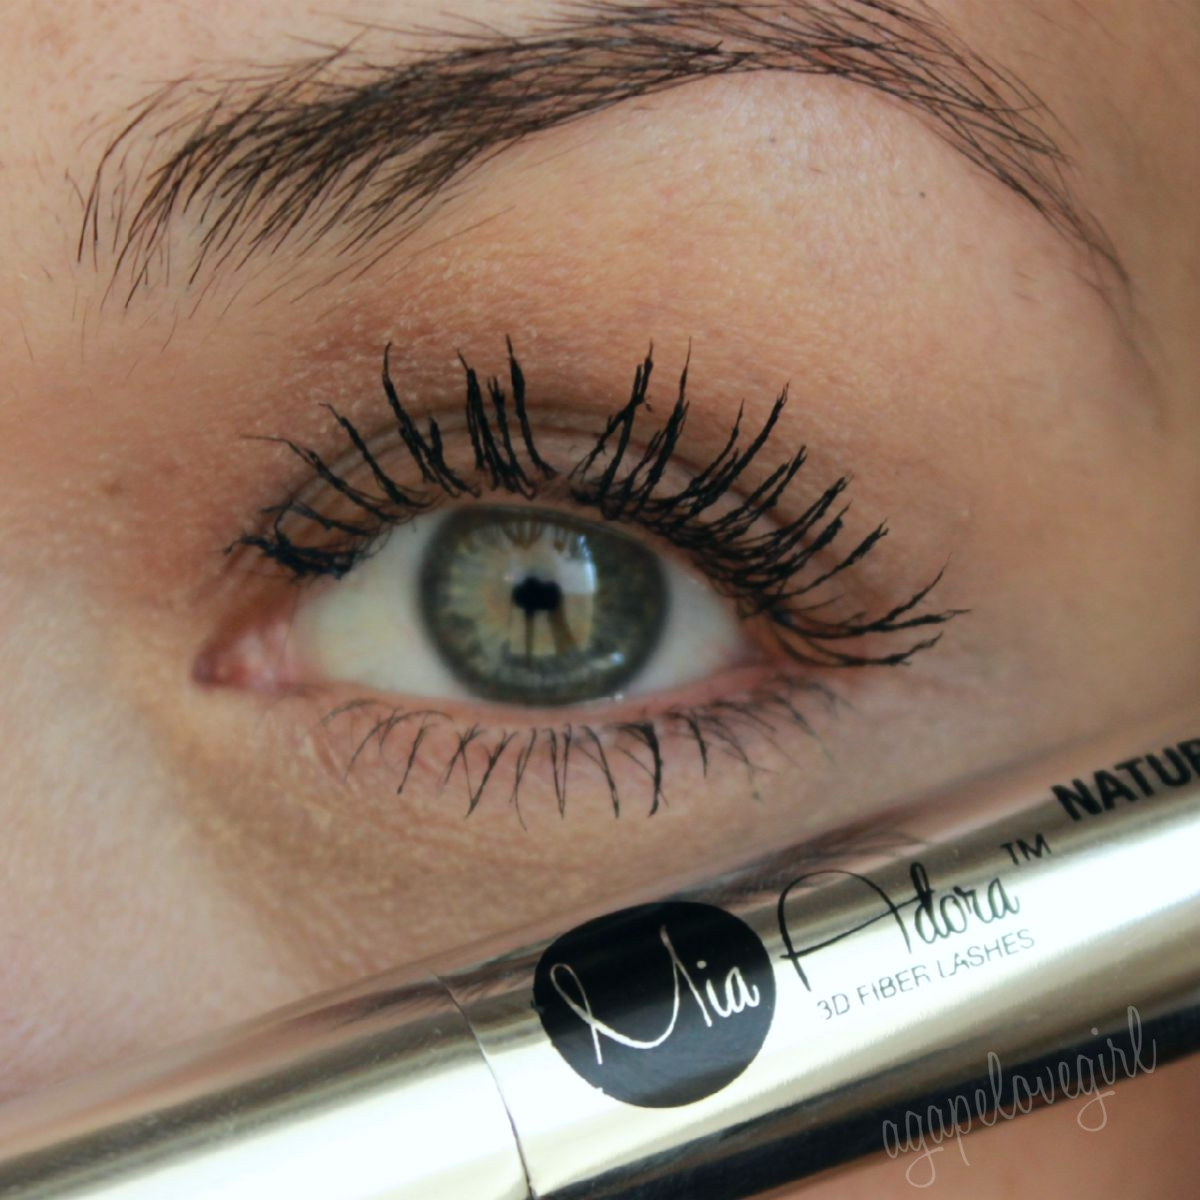 14065ce92cf As for me, I prefer my lashes to look long, separated and more defined. To  get that with this particular mascara, it does take some practice and  getting ...